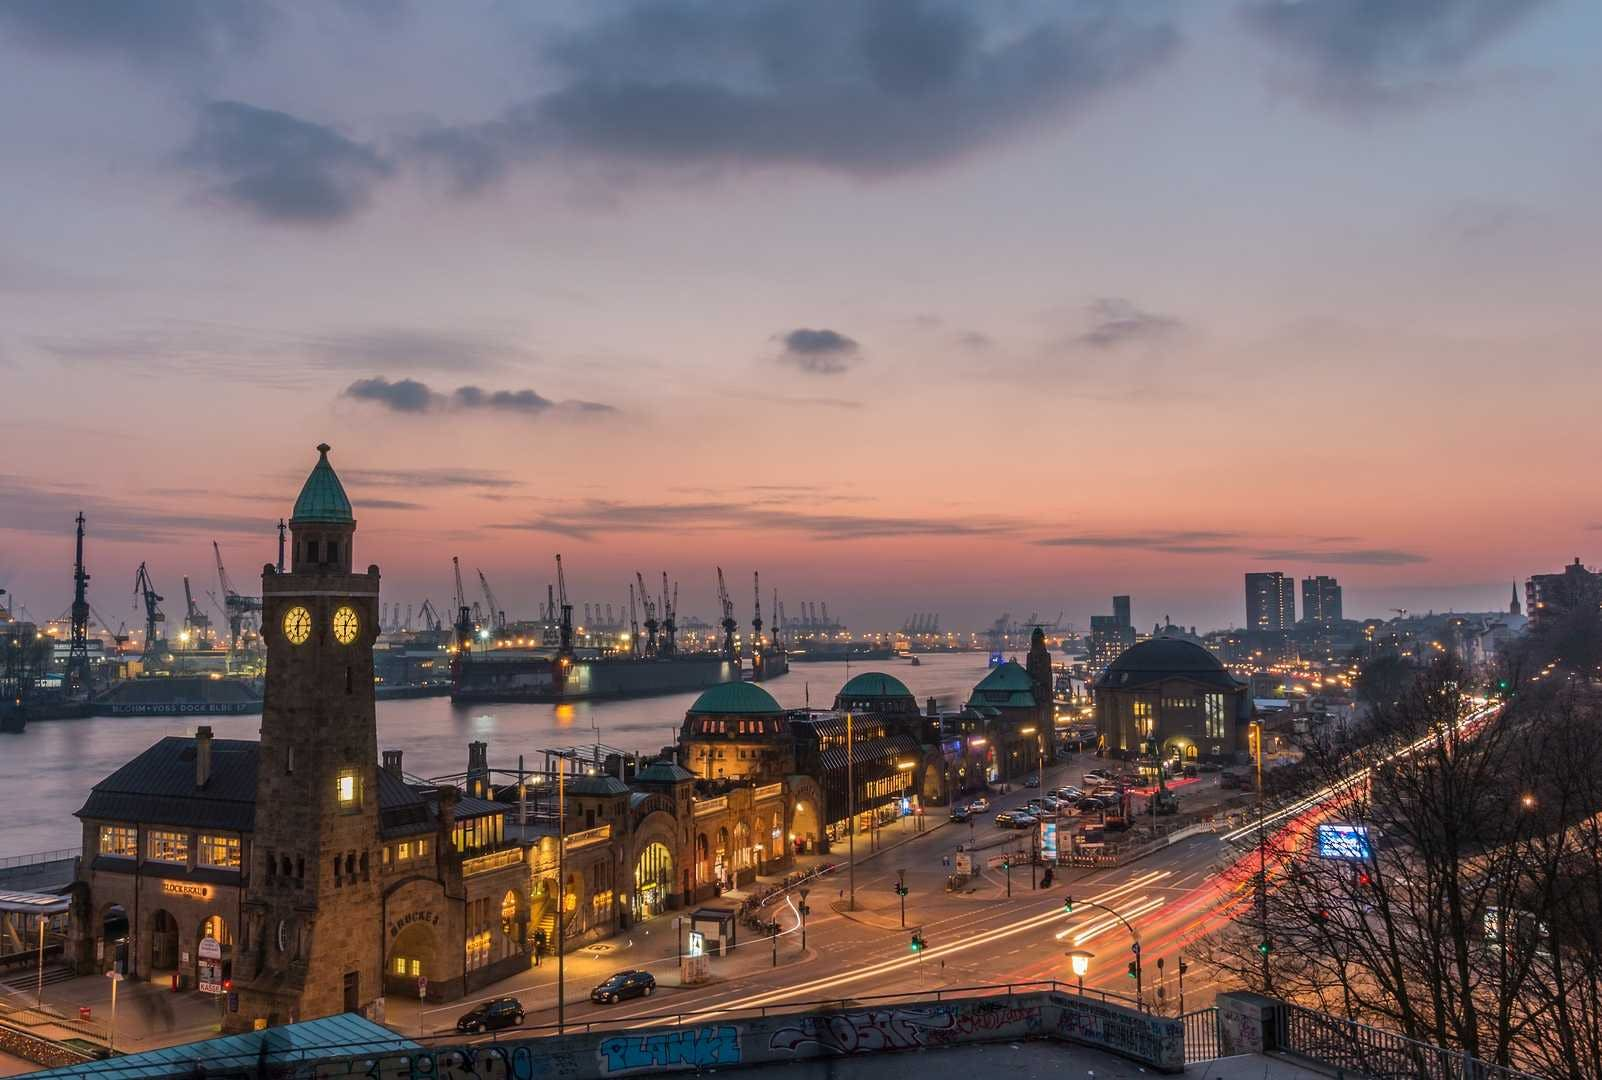 Waterfront Hamburg: The Views and the History [QUEST IN TEST MODE] image